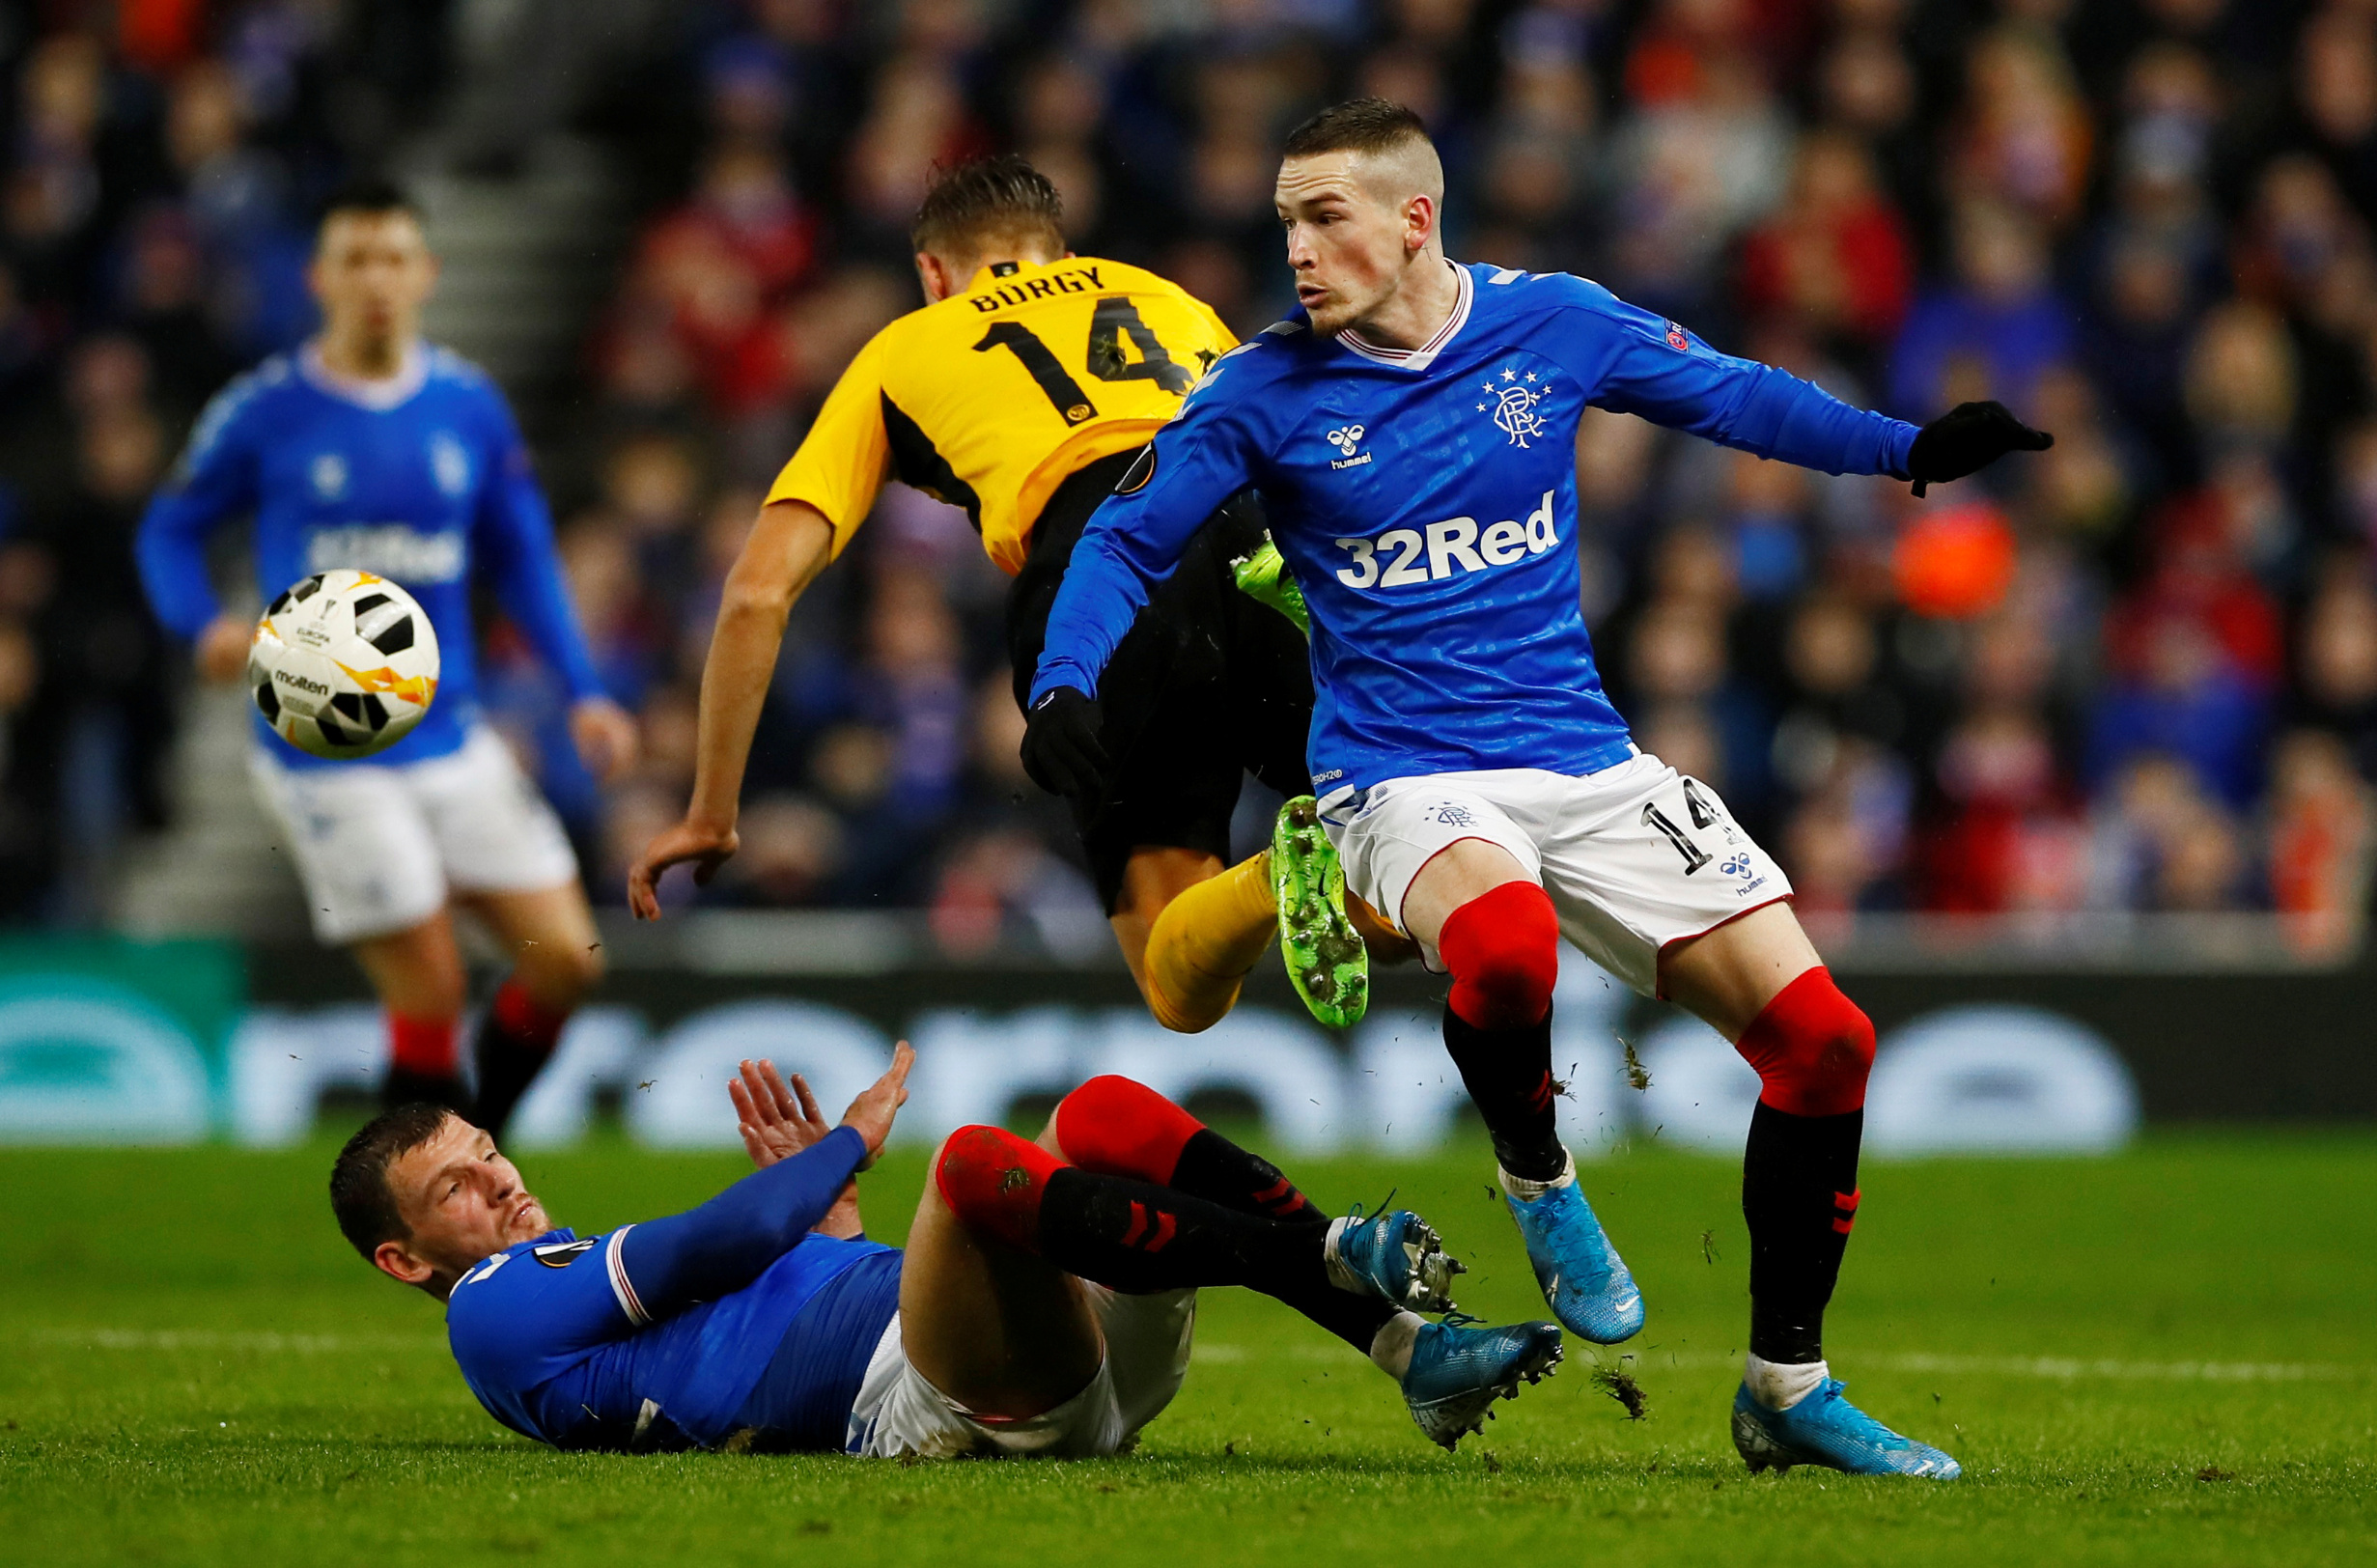 Soccer Football - Europa League - Group G - Rangers v BSC Young Boys - Ibrox, Glasgow, Scotland, Britain - December 12, 2019  Rangers' Ryan Kent and Borna Barisic in action with Young Boys' Nicolas Burgy   Action Images via Reuters/Jason Cairnduff